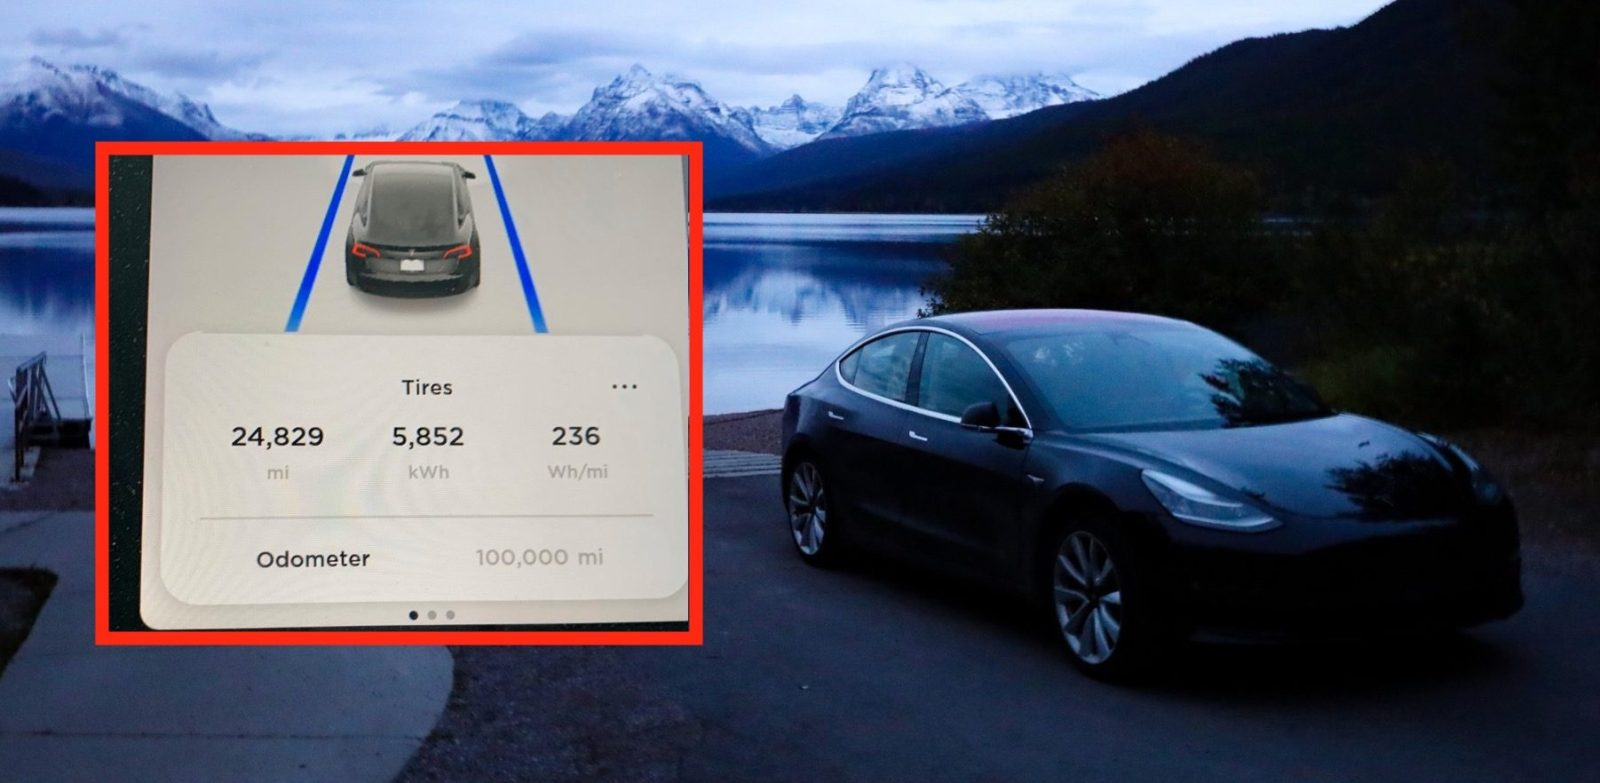 Tesla owner becomes first to push Model 3 to 100,000 miles, here's how it's doing